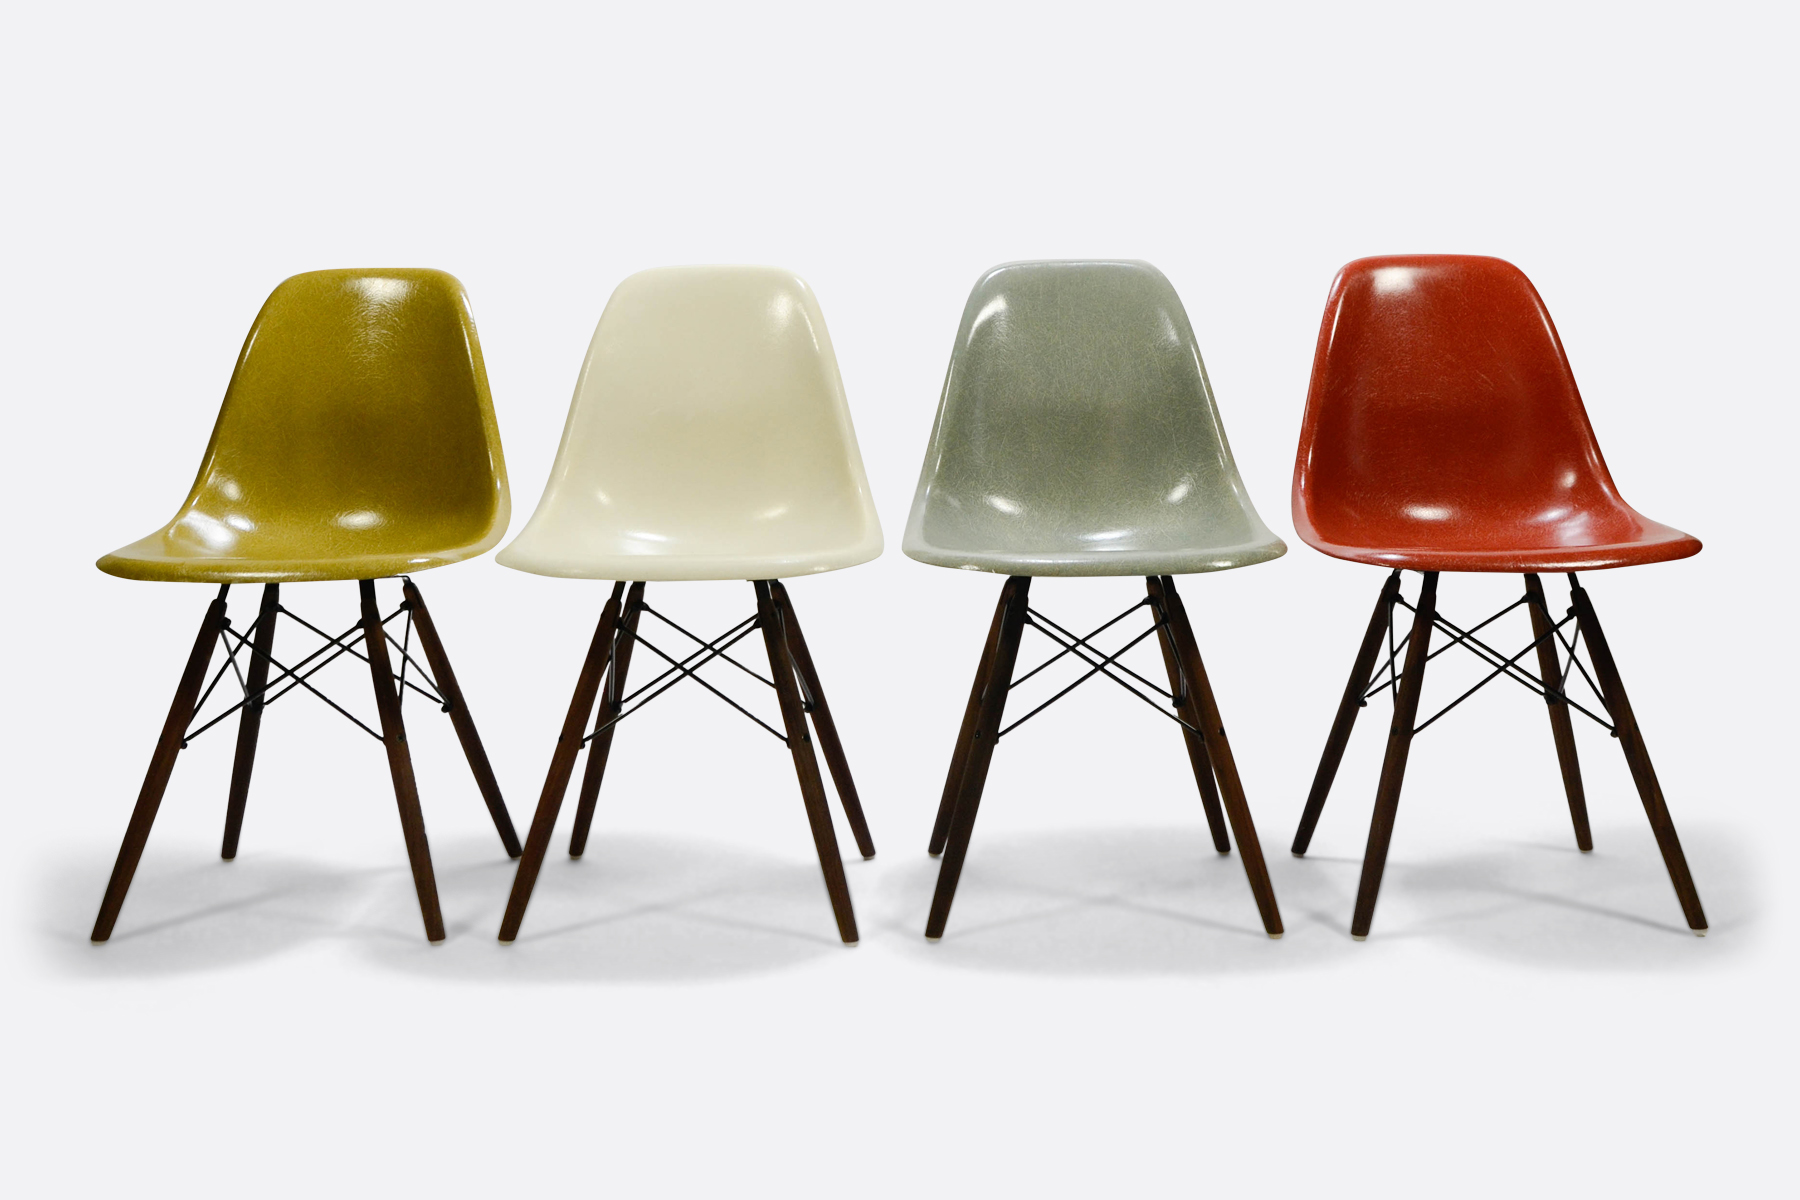 Eames DSW set of 4 Mustard - Off White - Seafoam Green - Terracotta